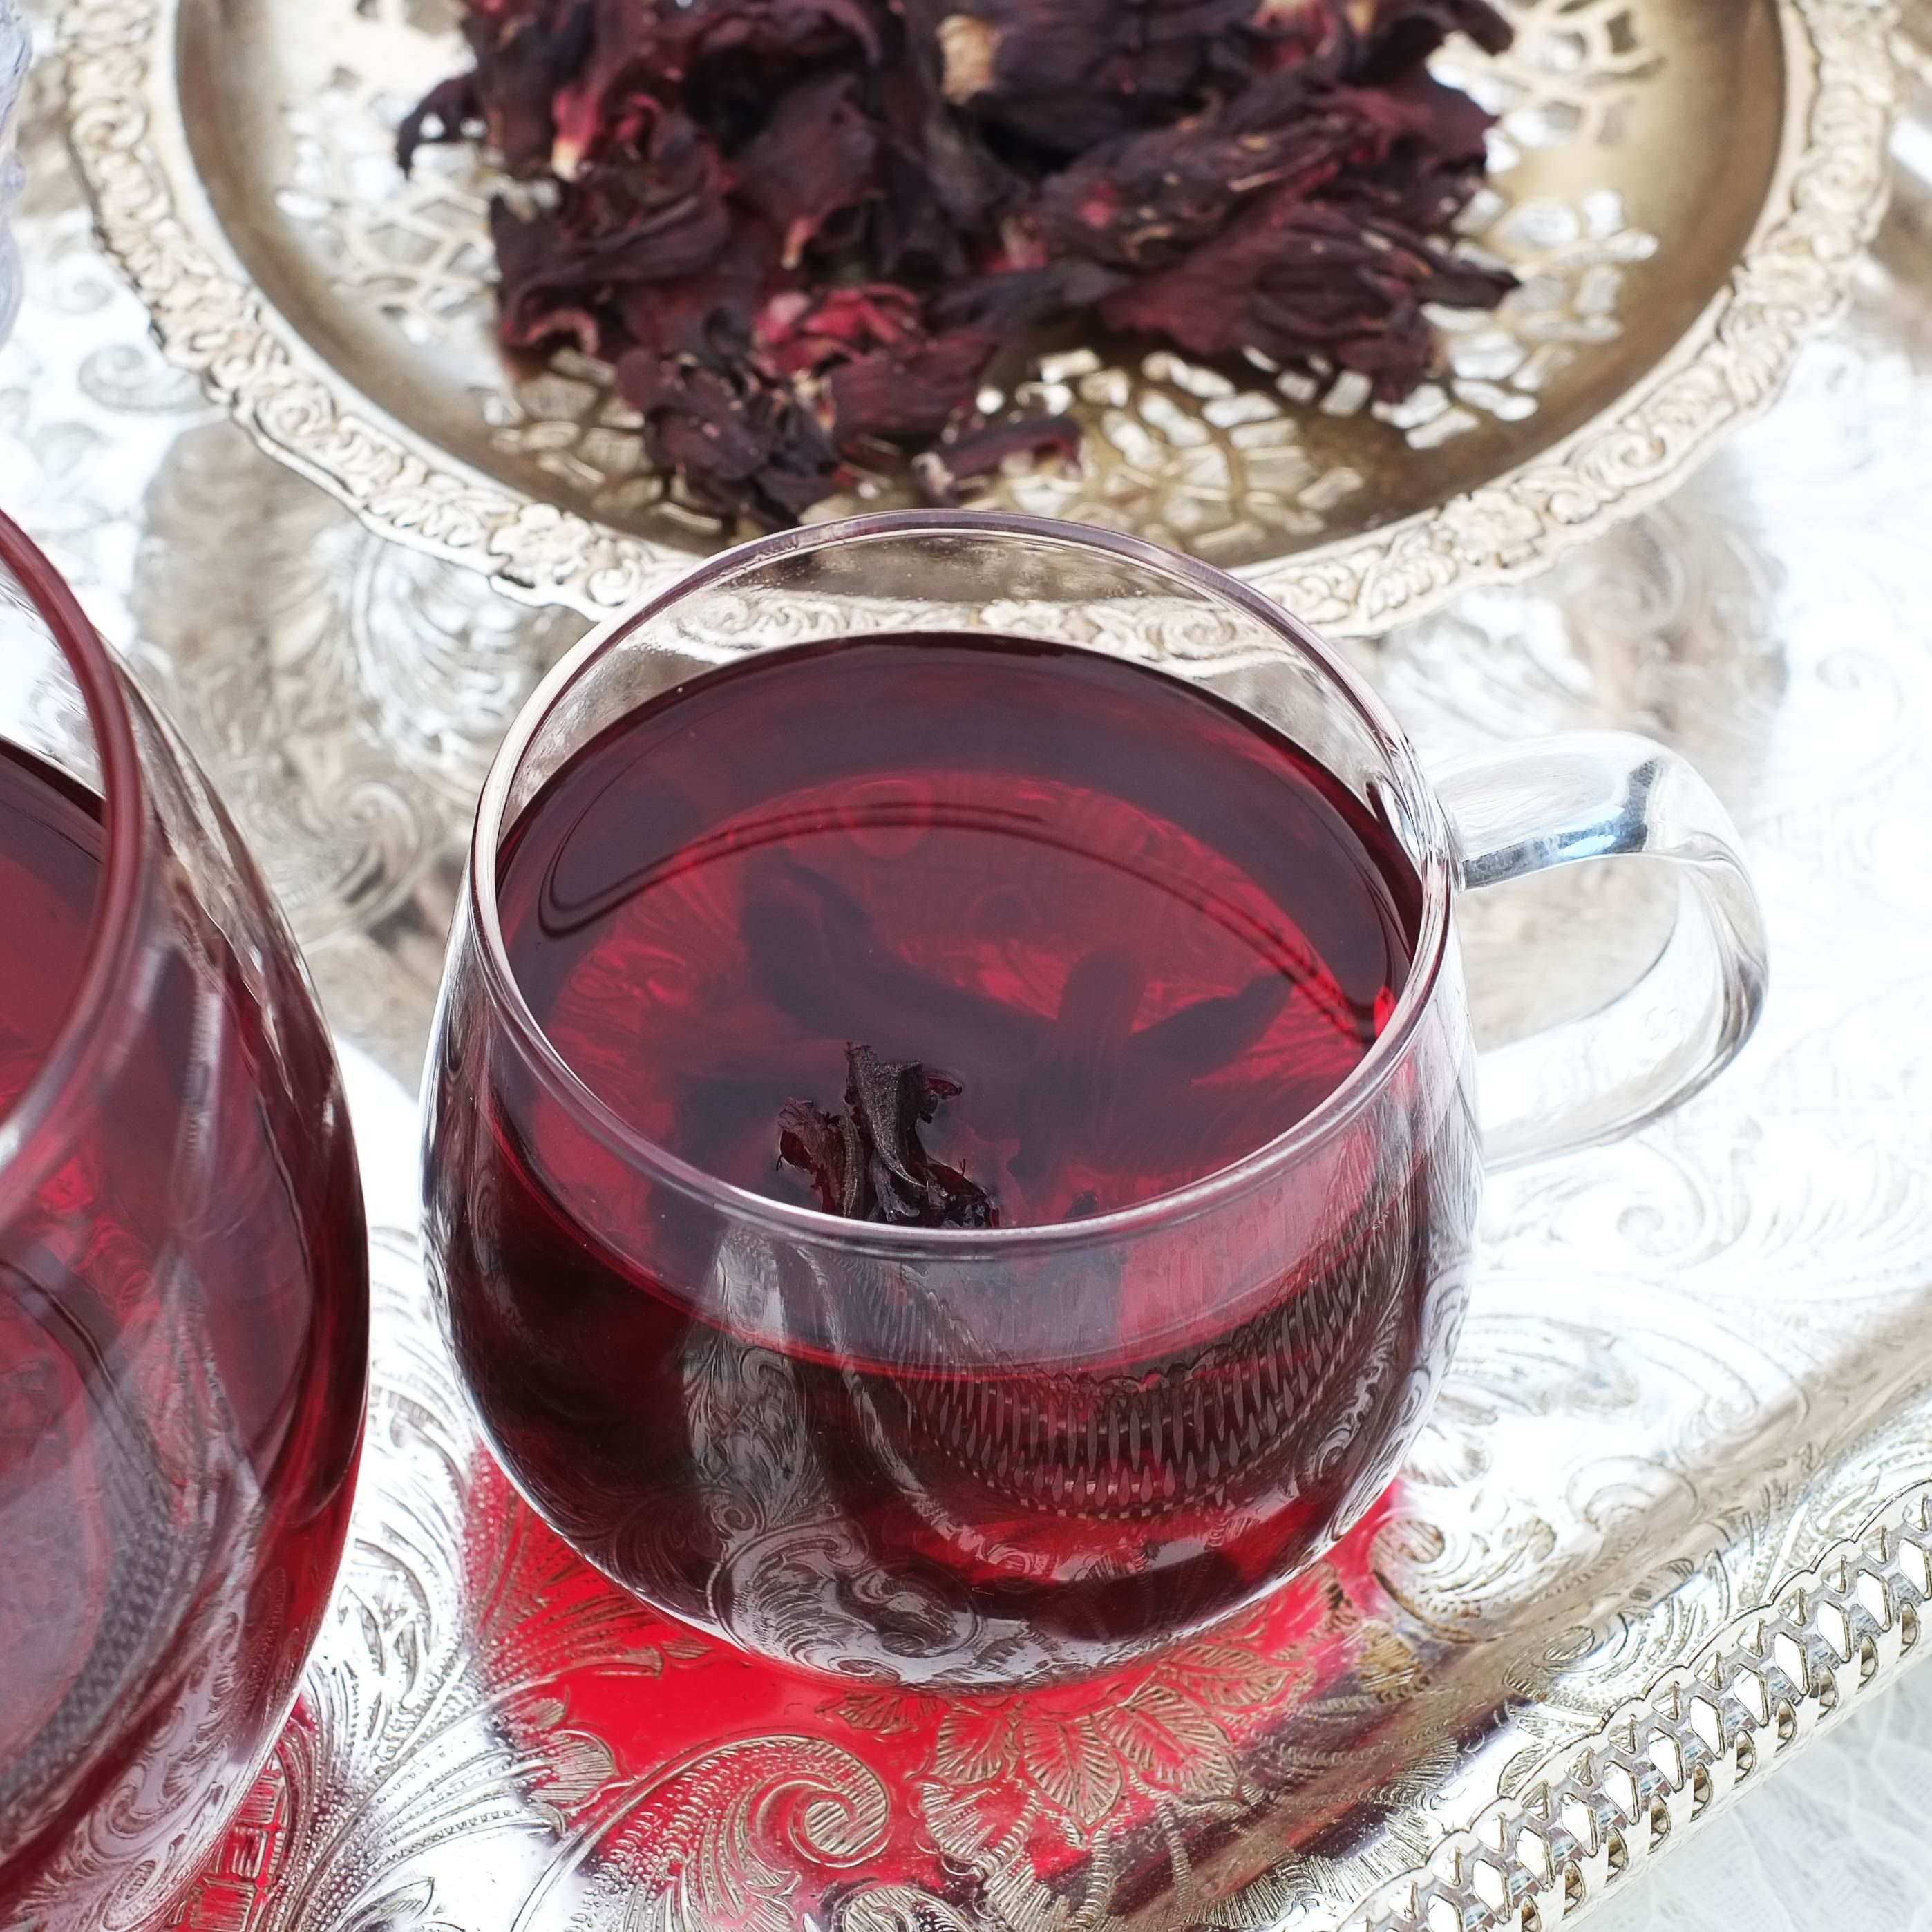 Aside from its multitude of possible health benefits hibiscus tea aside from its multitude of possible health benefits hibiscus tea is delicious and easy to prepare at home simply add dried hibiscus flowers to a teapot izmirmasajfo Choice Image